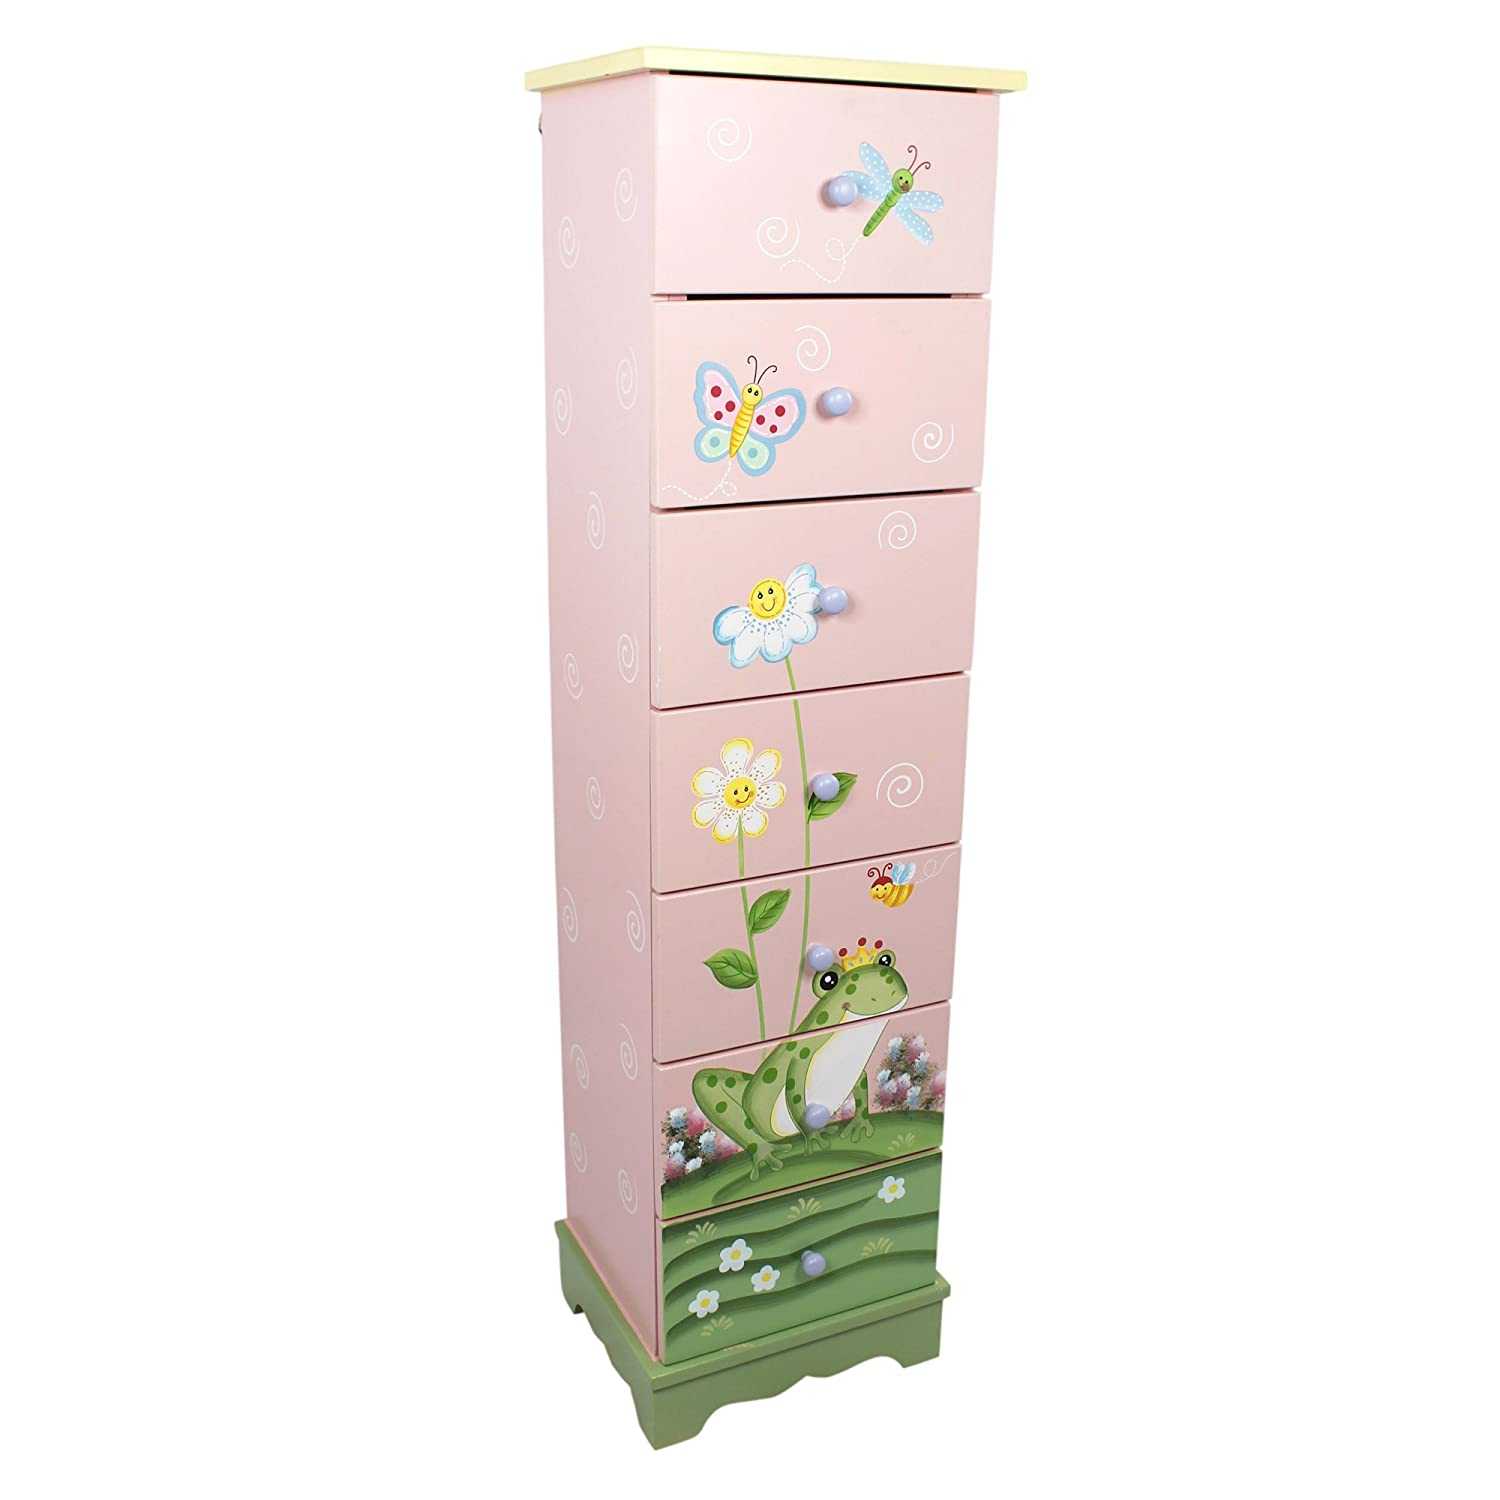 Fantasy Fields - Enchanted Woodland themed Wooden 5 Drawer Storage Unit Cabinet for Kids |  Hand Crafted & Painted Details | Child Friendly Water-based Paint Teamson TD-11736A